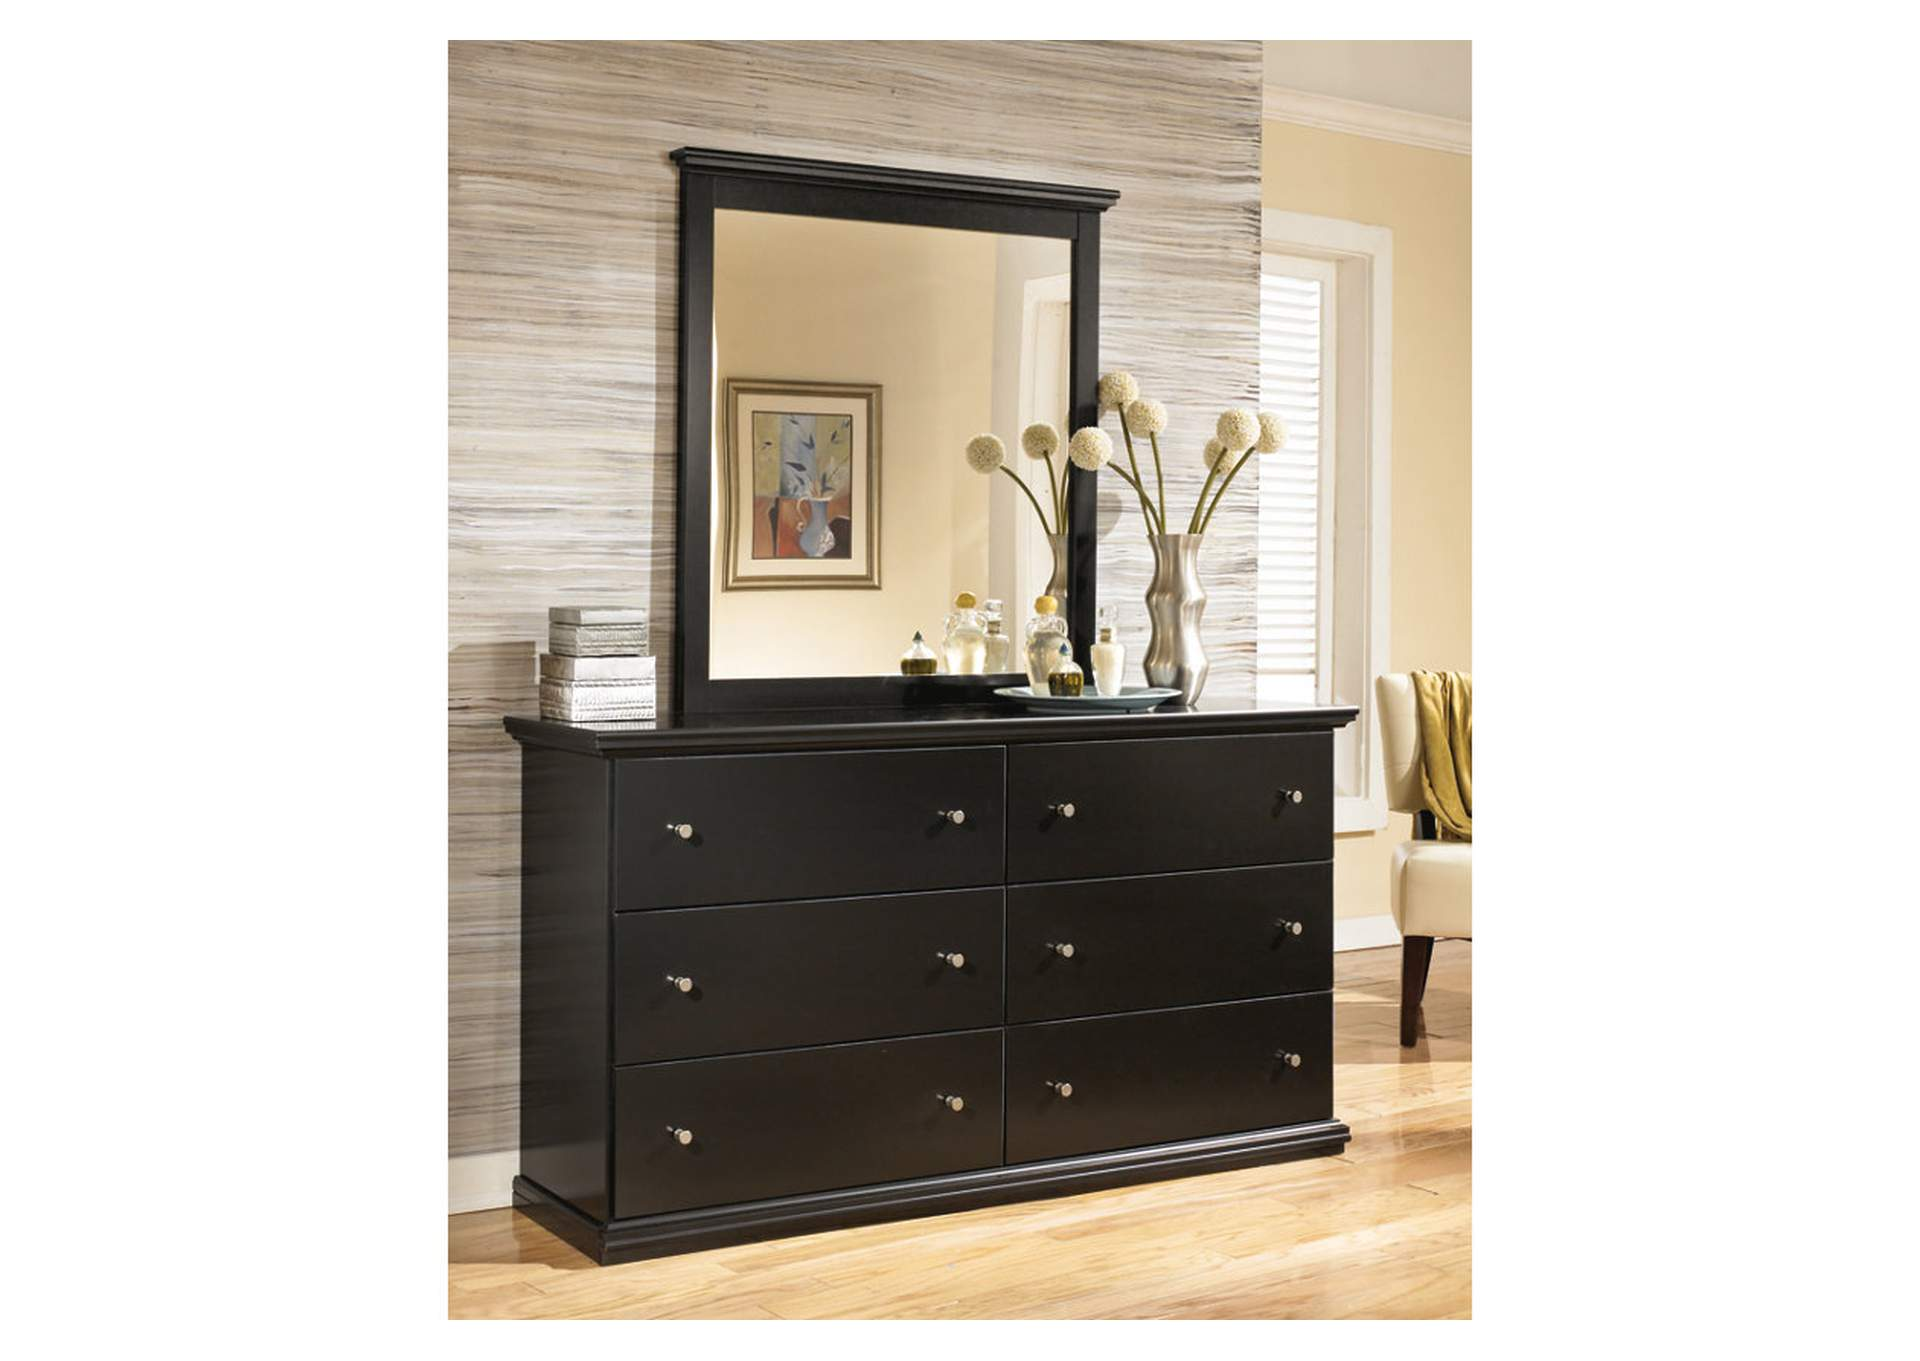 Maribel Dresser,ABF Signature Design by Ashley